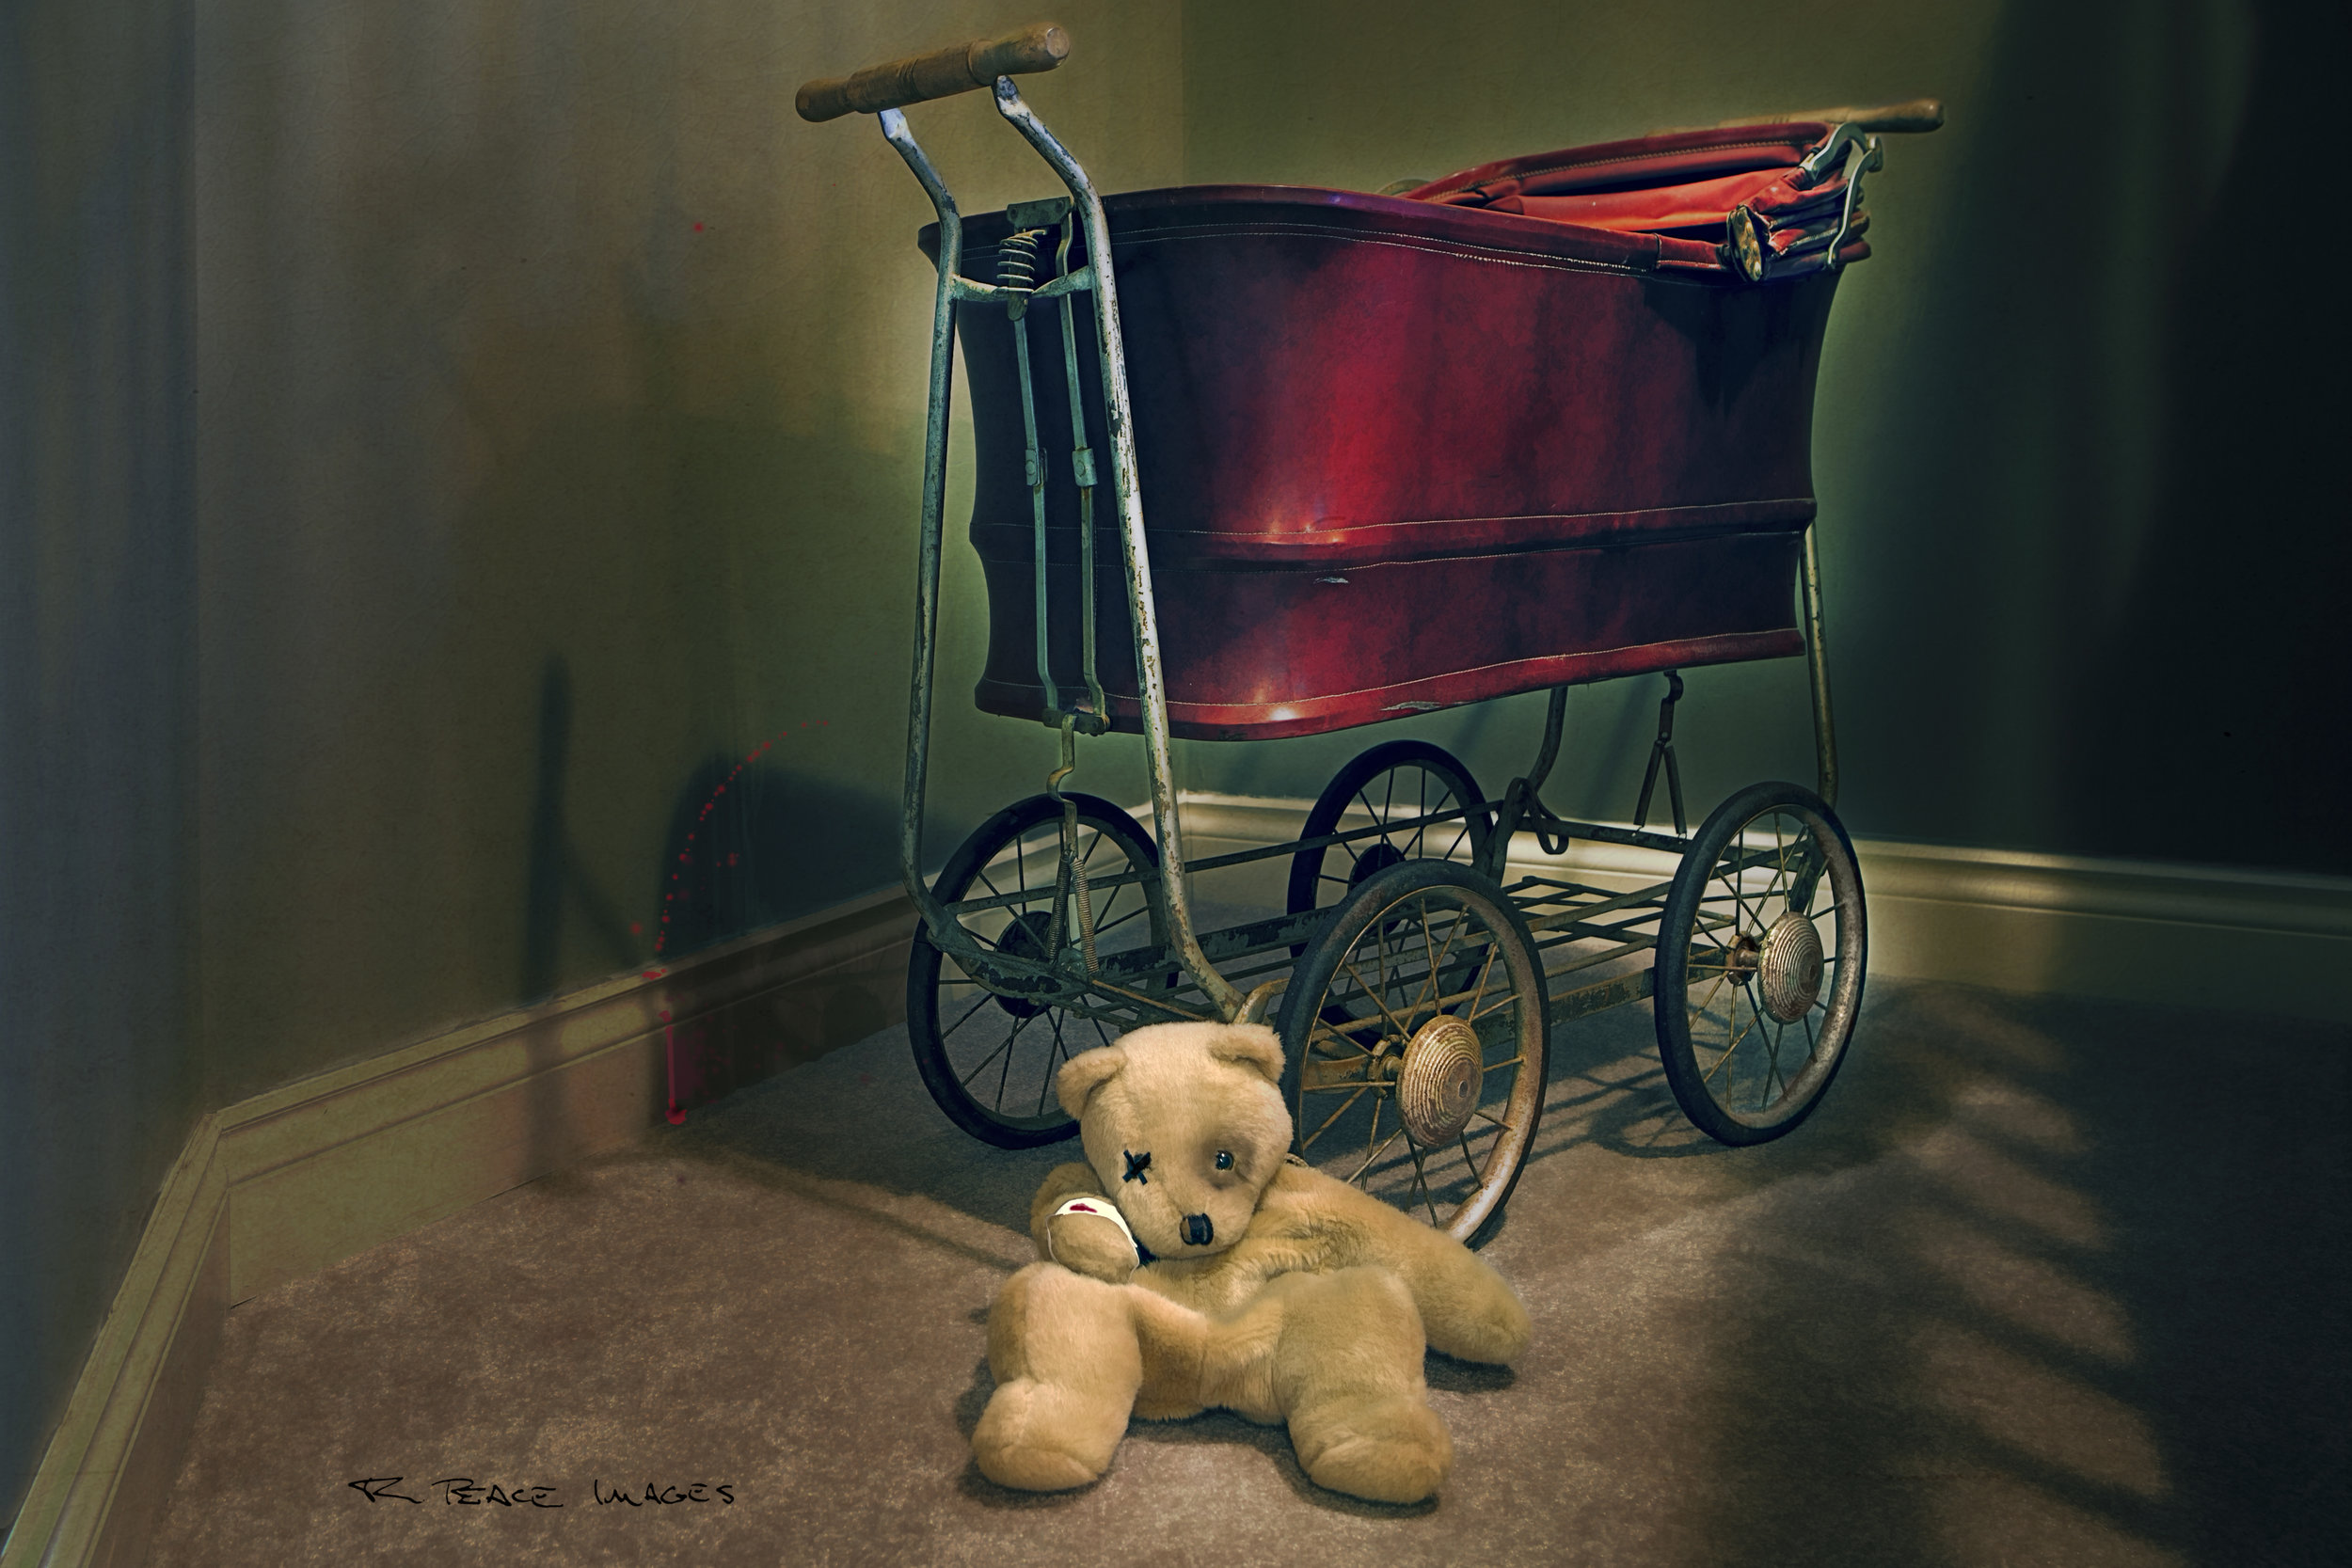 "This image won the 2019 Central Okanagan Photographic Society (COPS) photo of the year. Titled ""Bad Bear"" a dark film noir presence tells the story of perhaps an unseen occupant of the carriage and the injured bear."